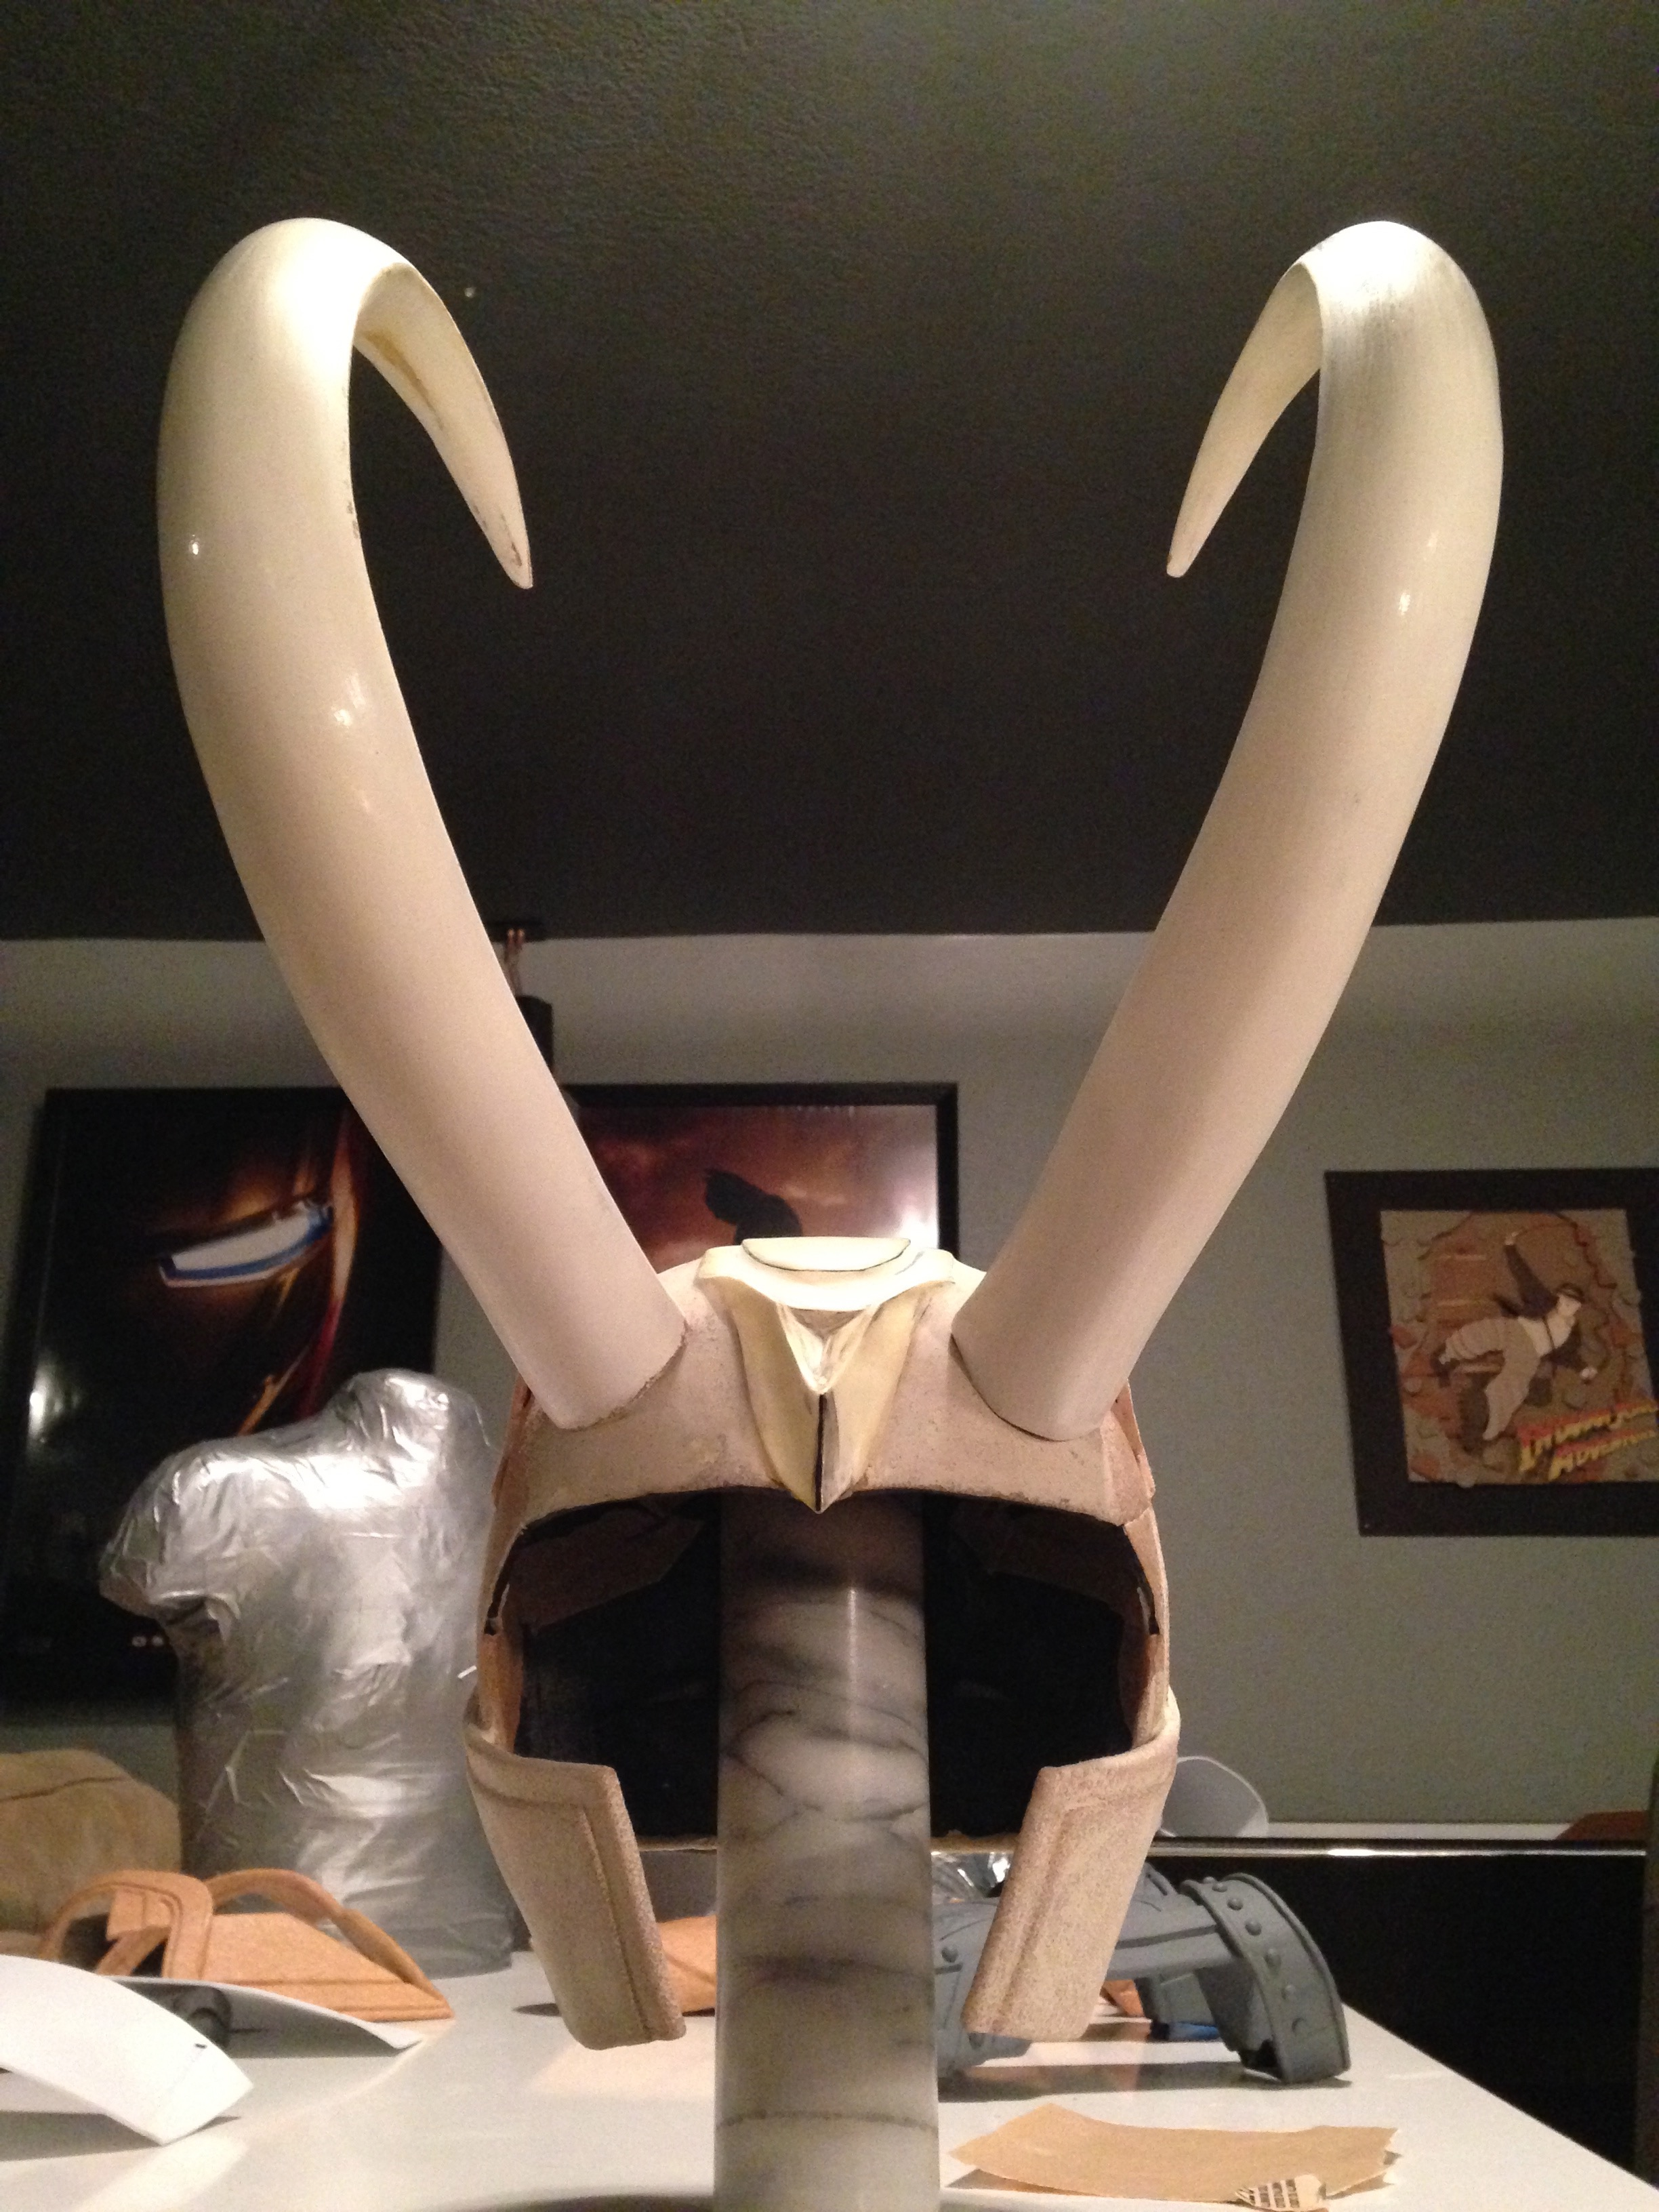 Horns attached.